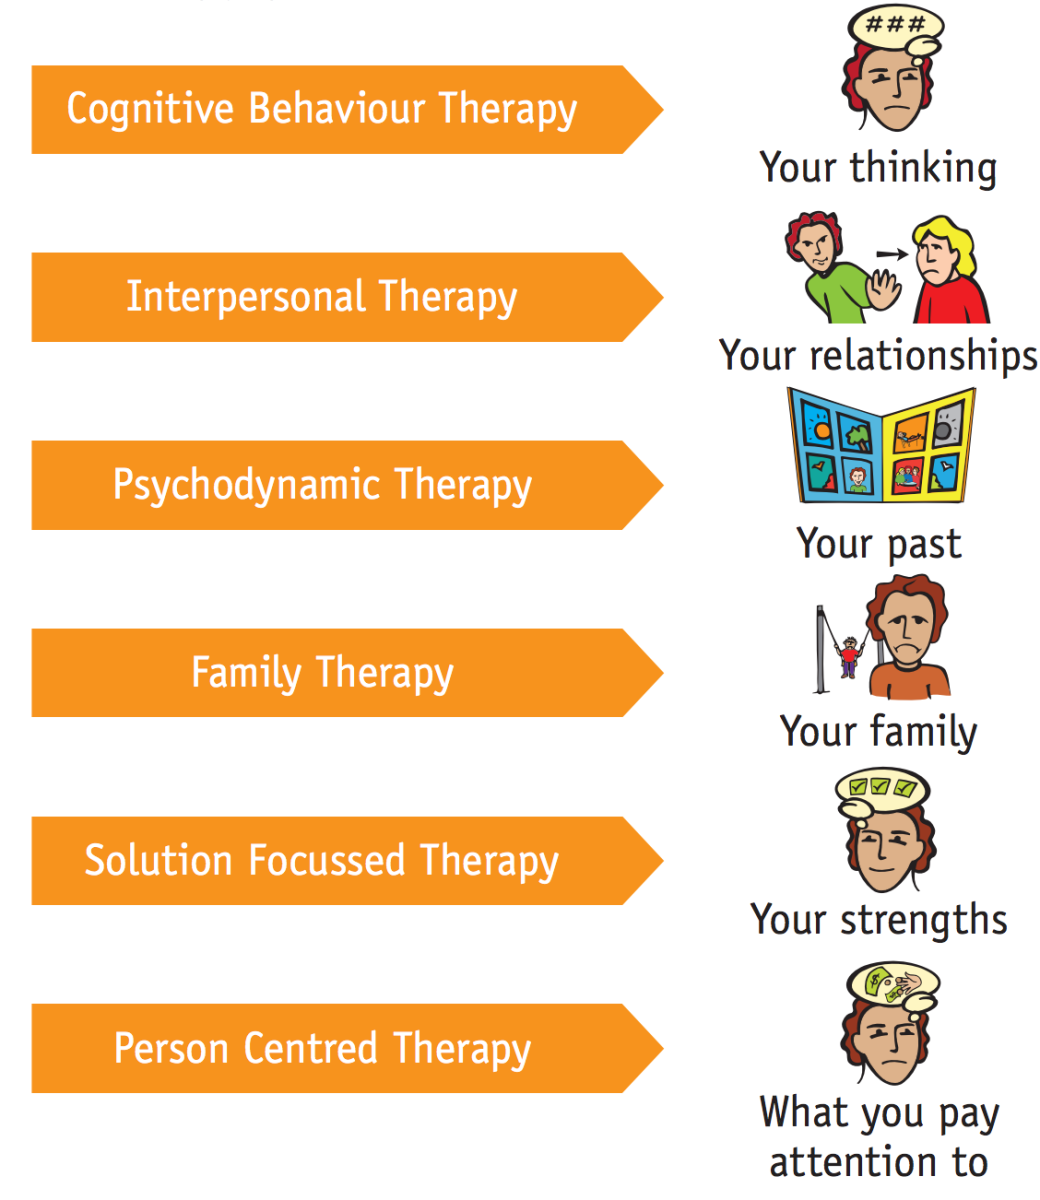 These aren't the only types of therapy, but these are the most common.